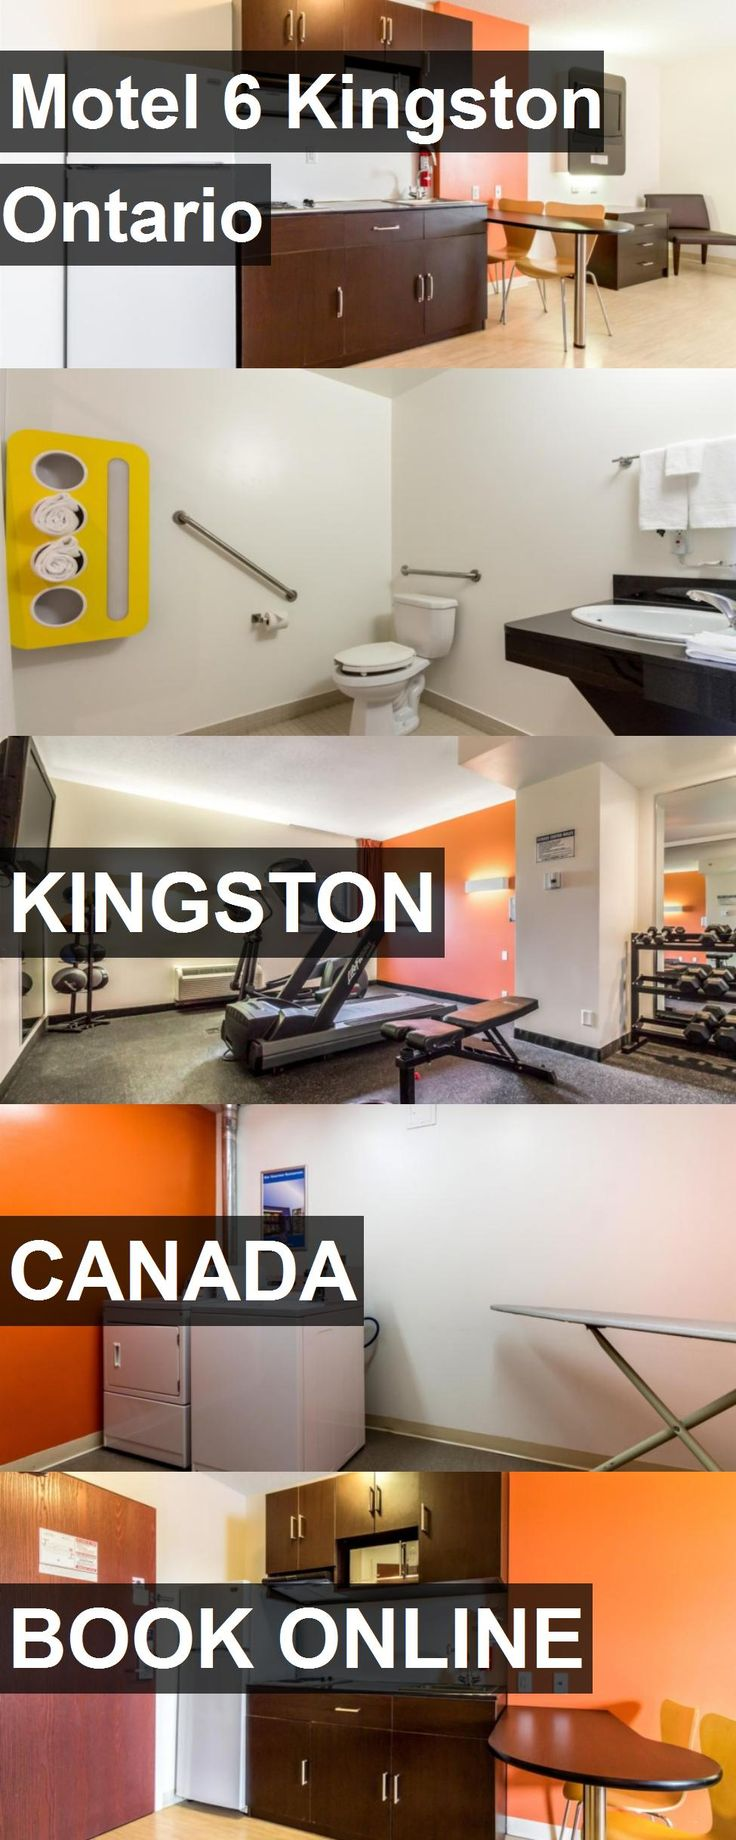 Hotel Motel 6 Kingston Ontario in Kingston, Canada. For more information, photos, reviews and best prices please follow the link. #Canada #Kingston #Motel6KingstonOntario #hotel #travel #vacation